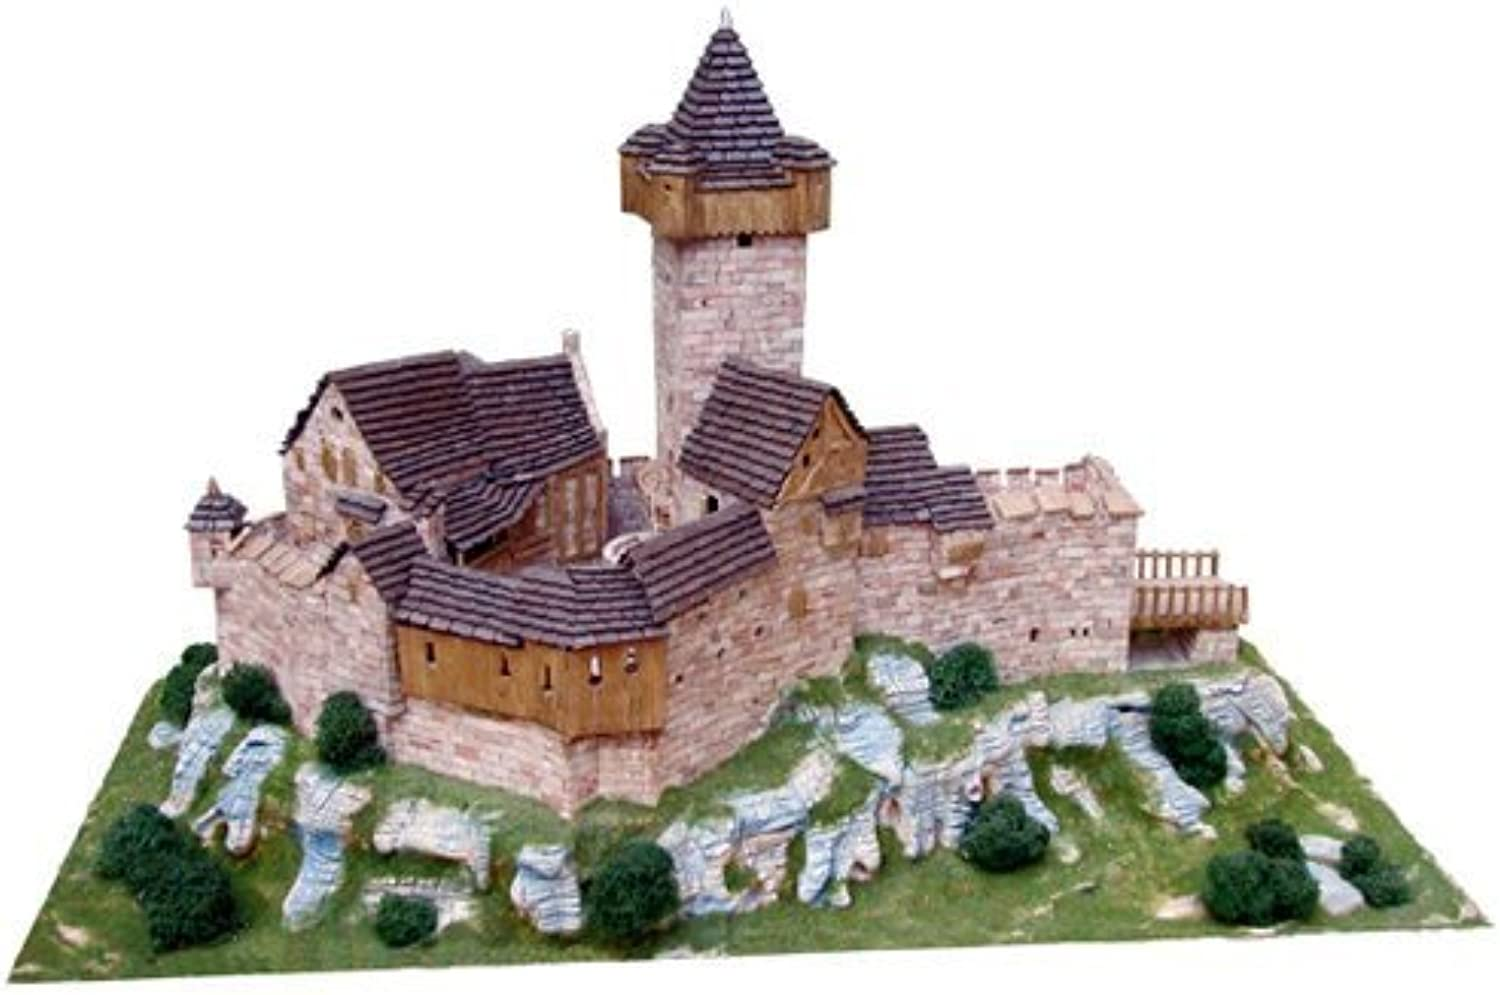 Burg Falkenstein building kit - HO Scale by Aedes Ars